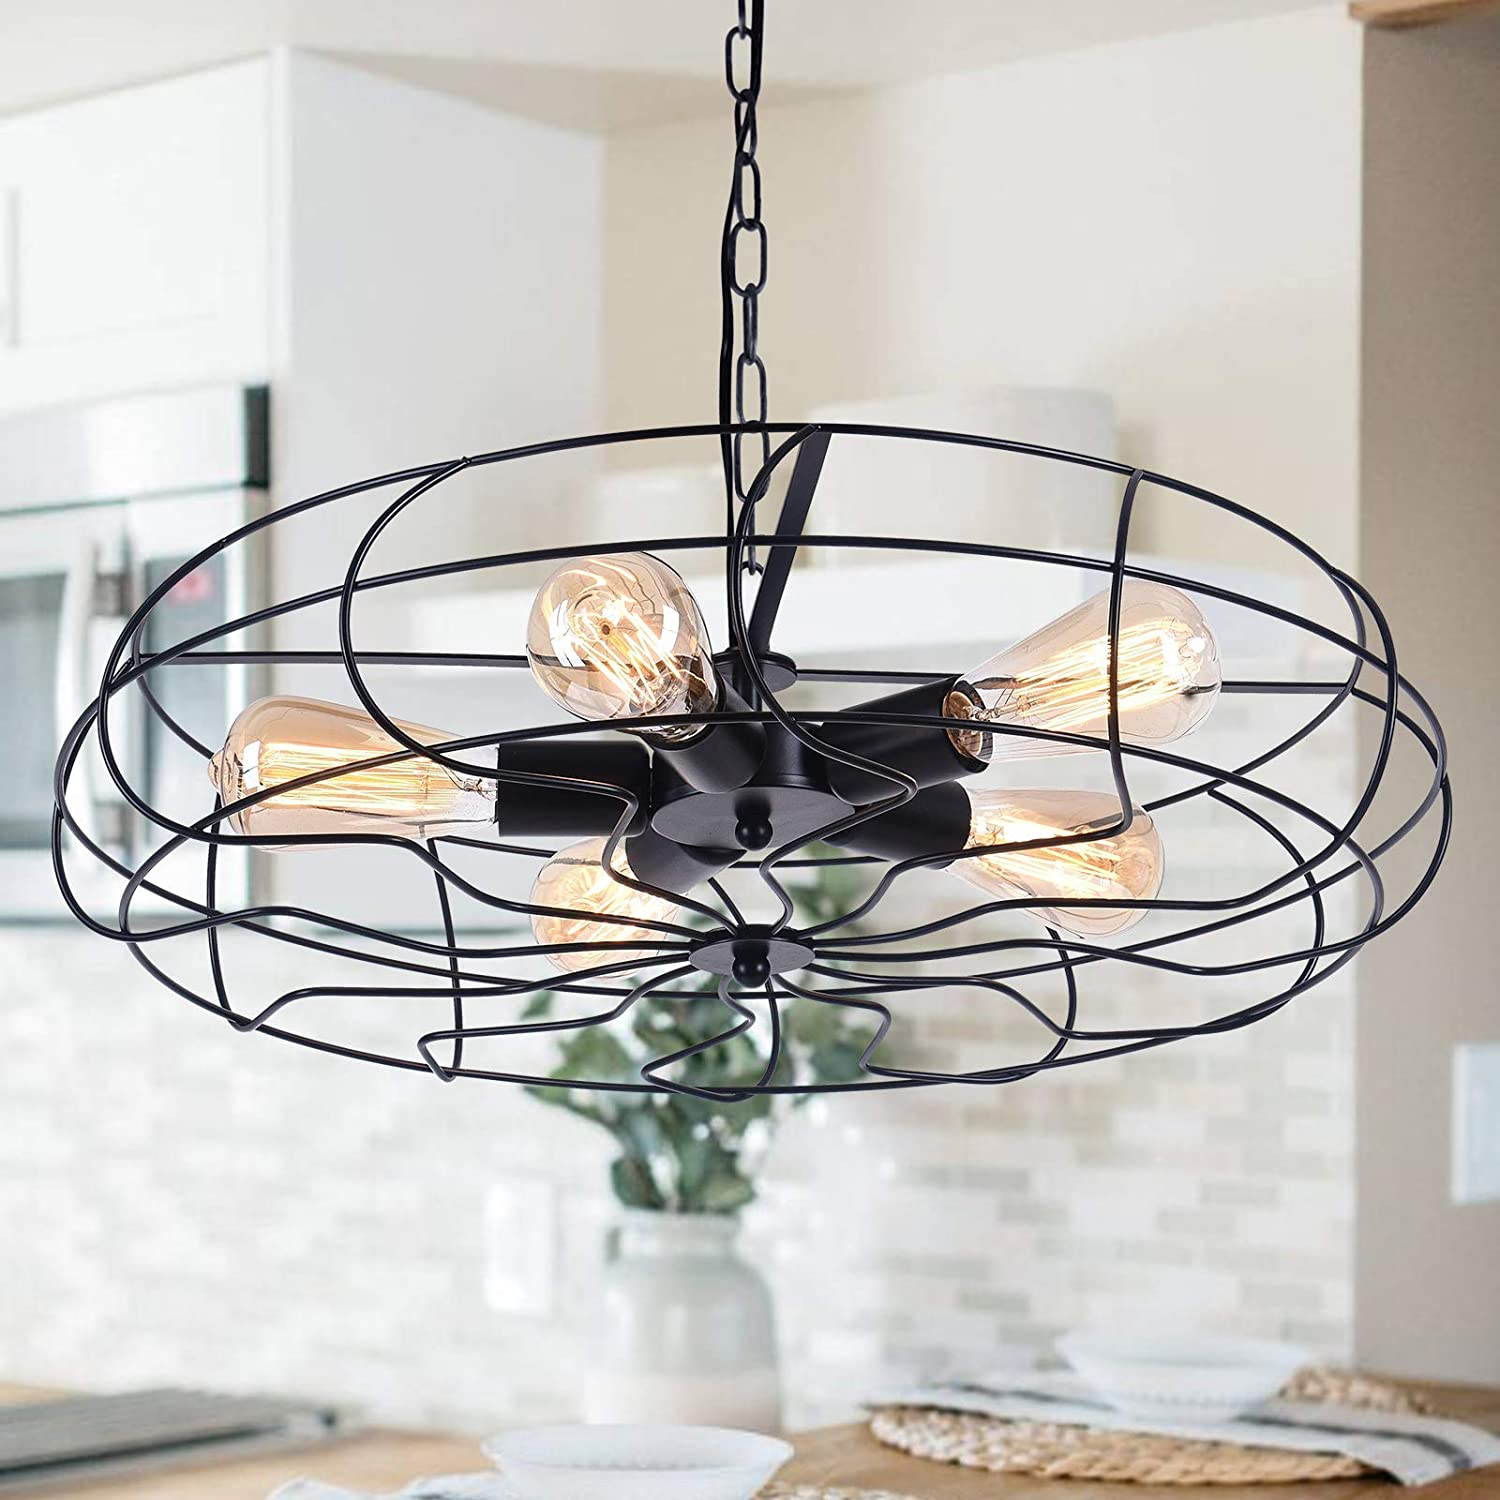 OYIPRO Rustic Chandeliers Farmhouse Industrial Hanging Pendant Light, 5 Light Oil Rubbed Bronze Vintage Retro Lights Fixtures Fan Metal Cage Style Ceiling Lighting, Black